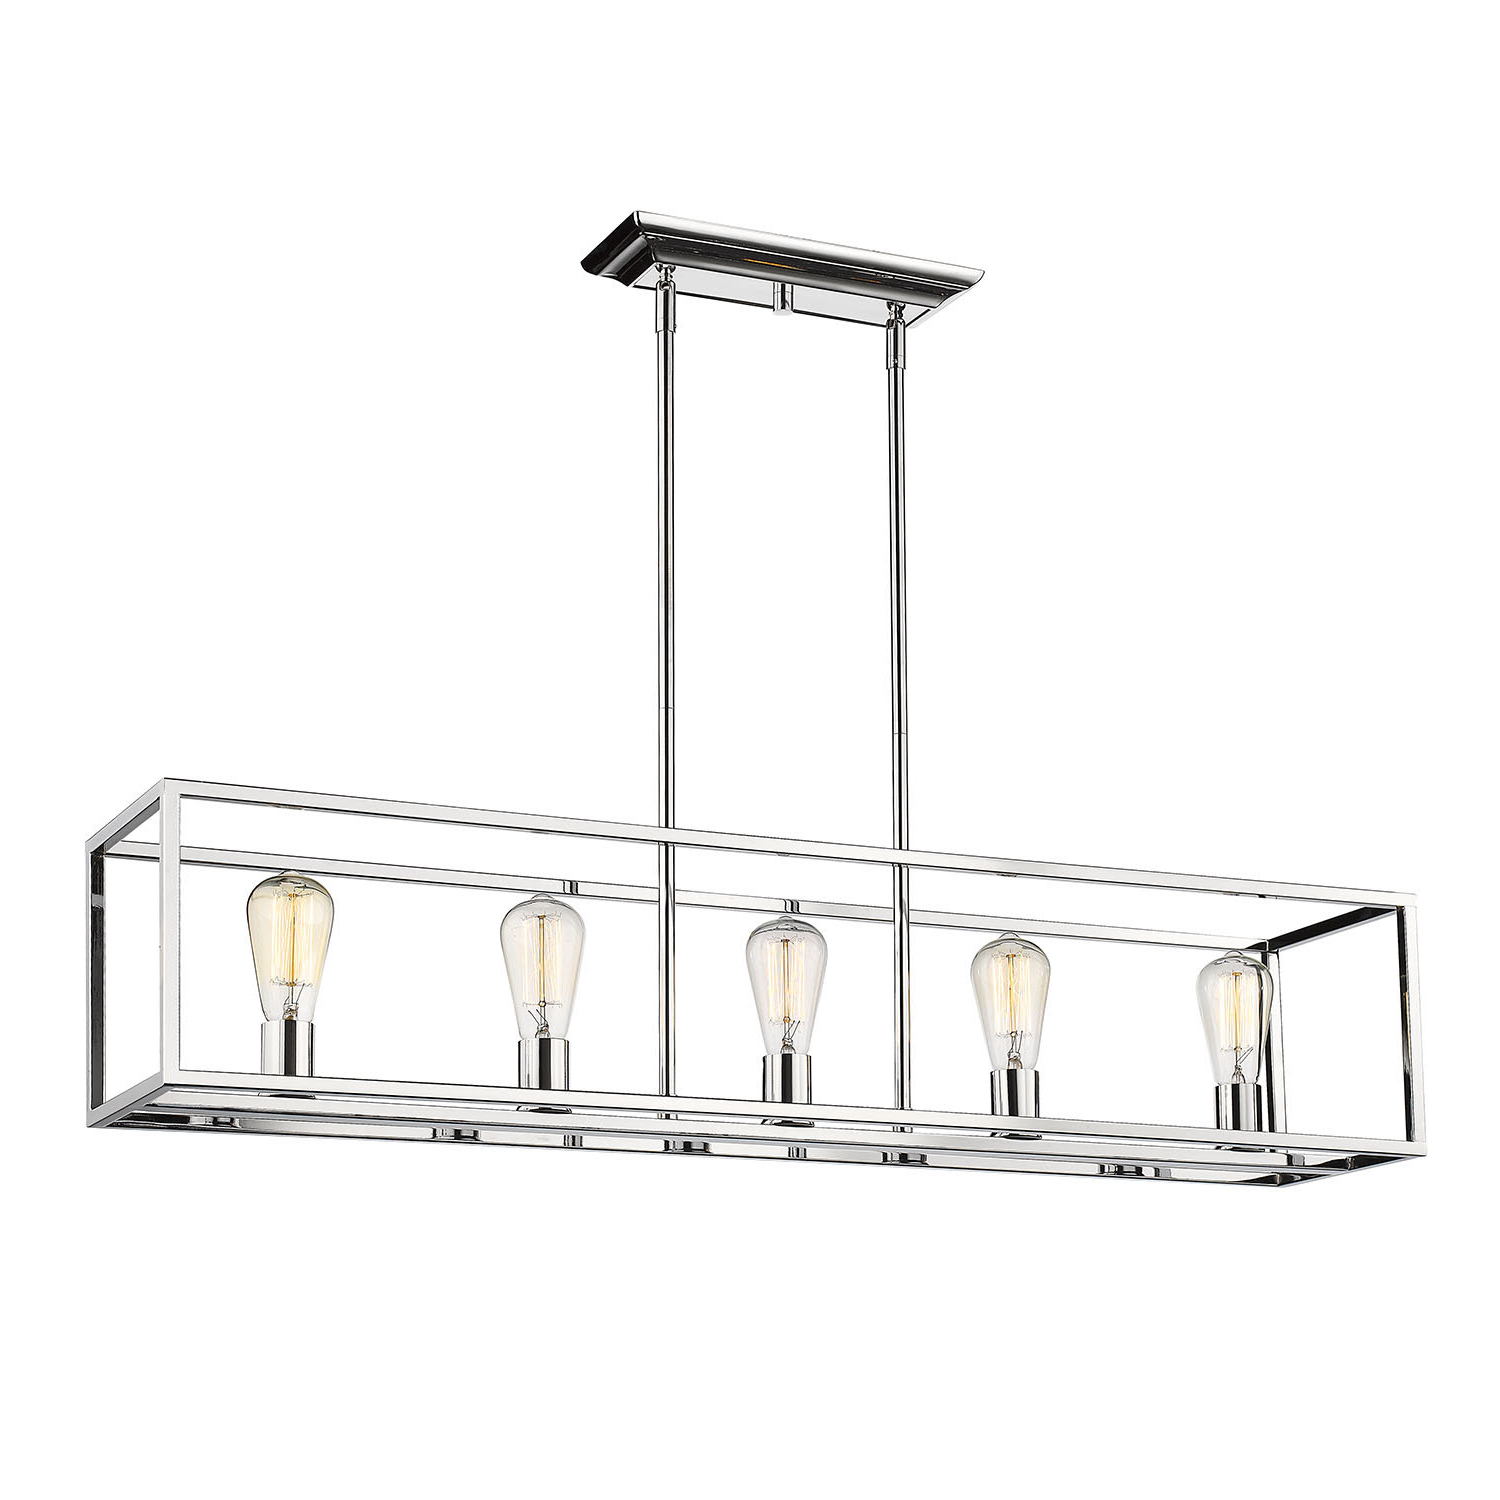 Widely Used Mizer 5 Light Kitchen Island Linear Pendant Regarding Jefferson 4 Light Kitchen Island Linear Pendants (View 25 of 25)